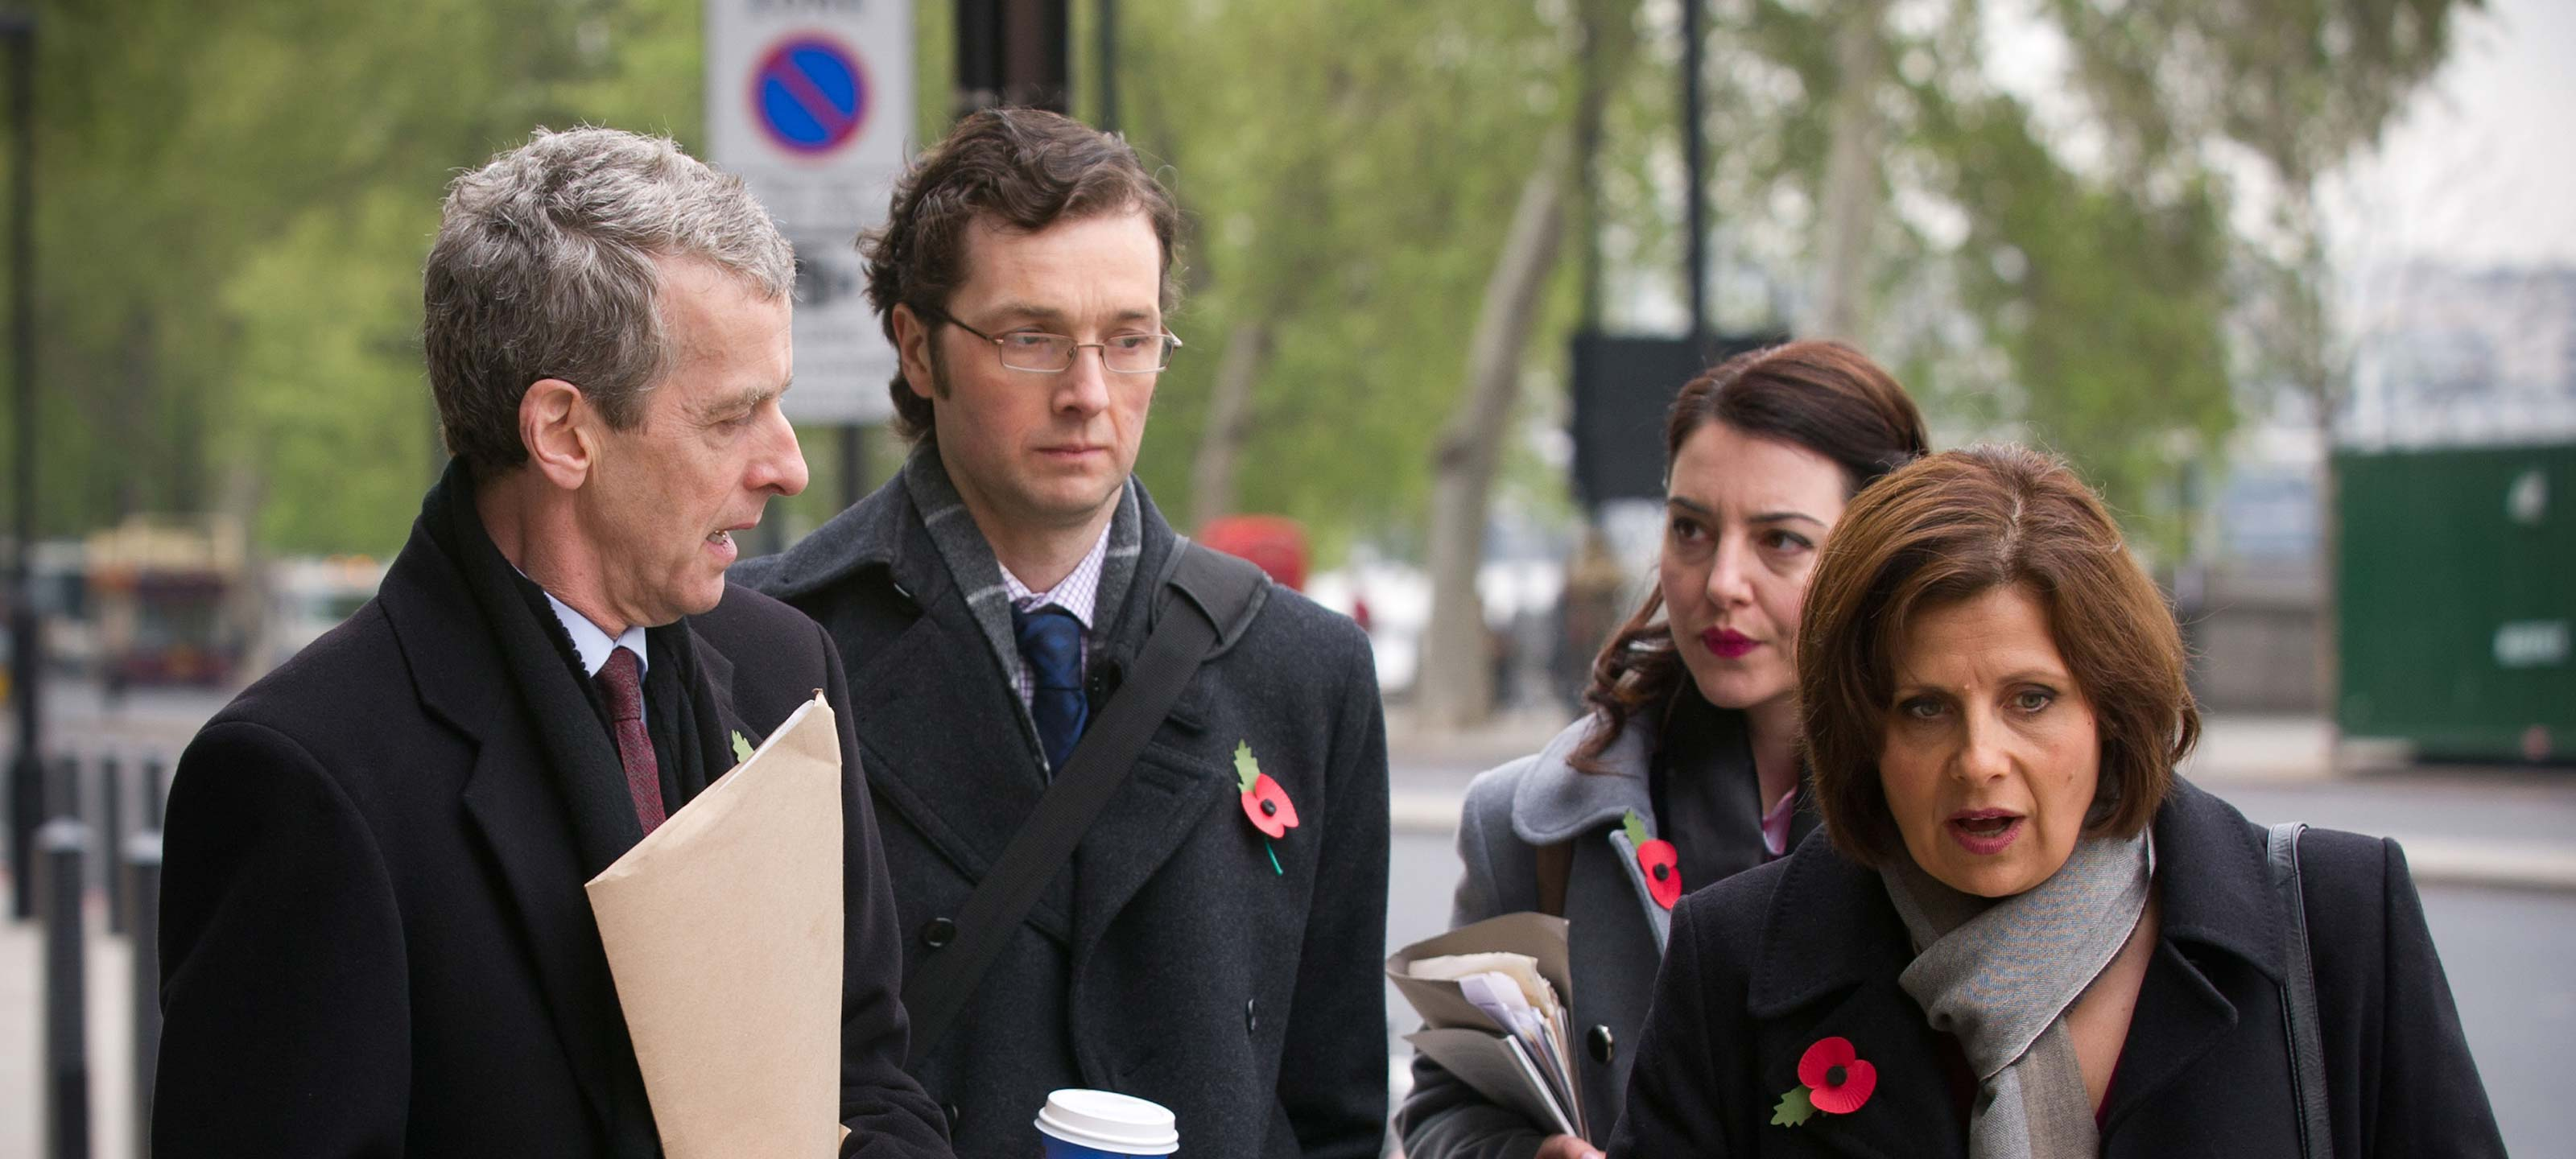 Where to Watch The Thick of It